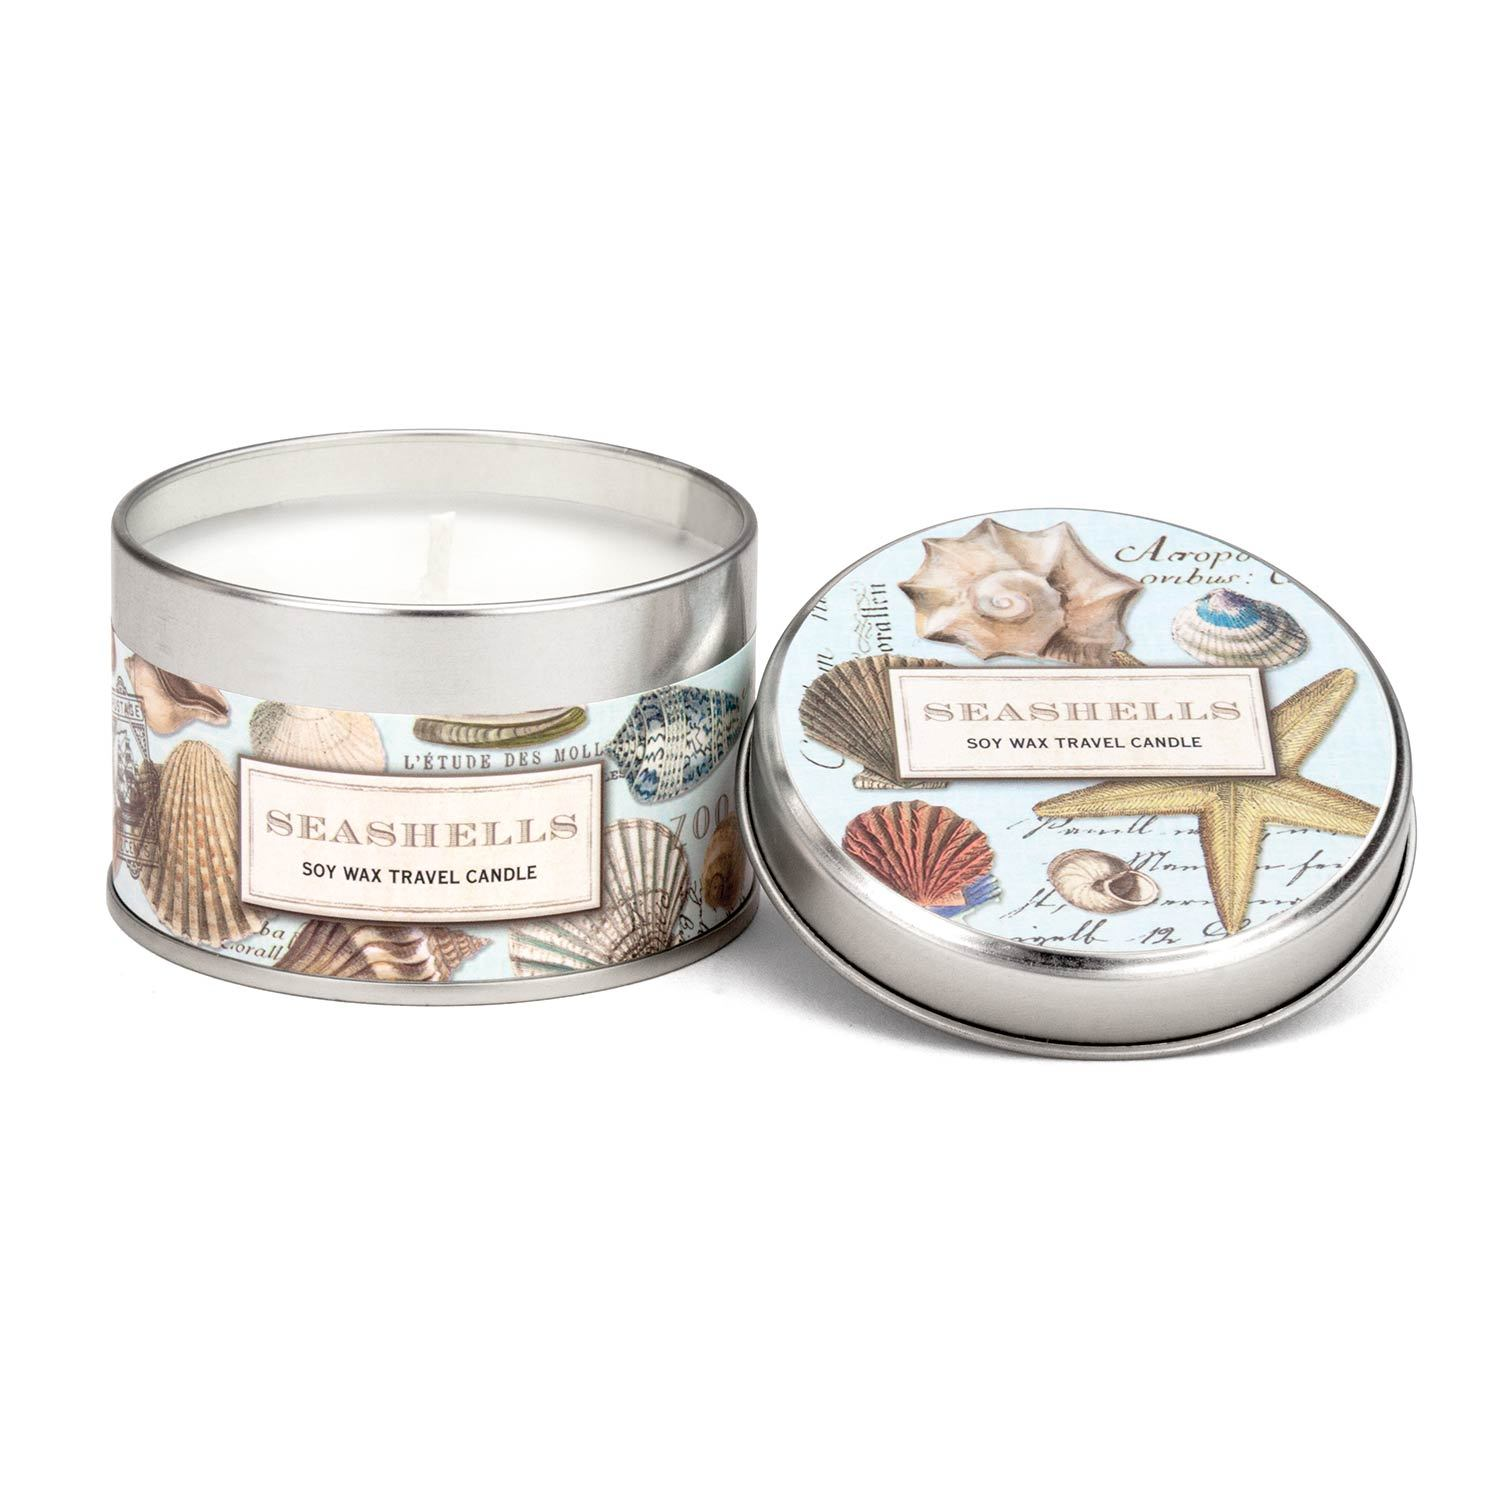 SEASHELLS TRAVEL CANDLE CANT304 - Molly's! A Chic and Unique Boutique